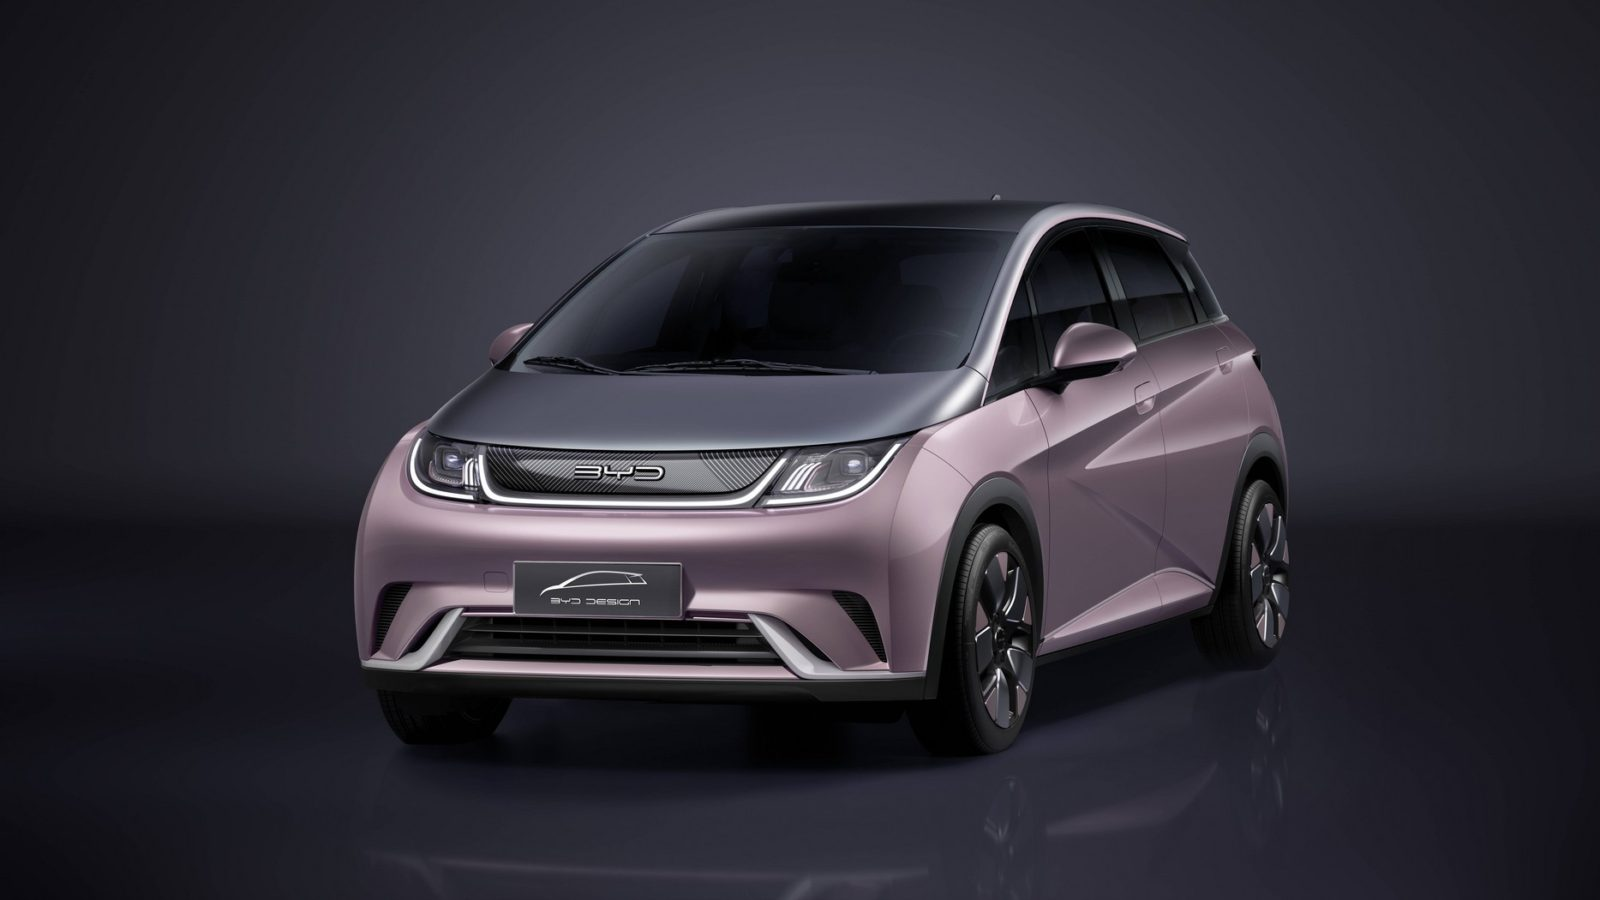 byd-dolphin-will-be-a-$15,500-800v-ev-with-up-to-400-km-of-range